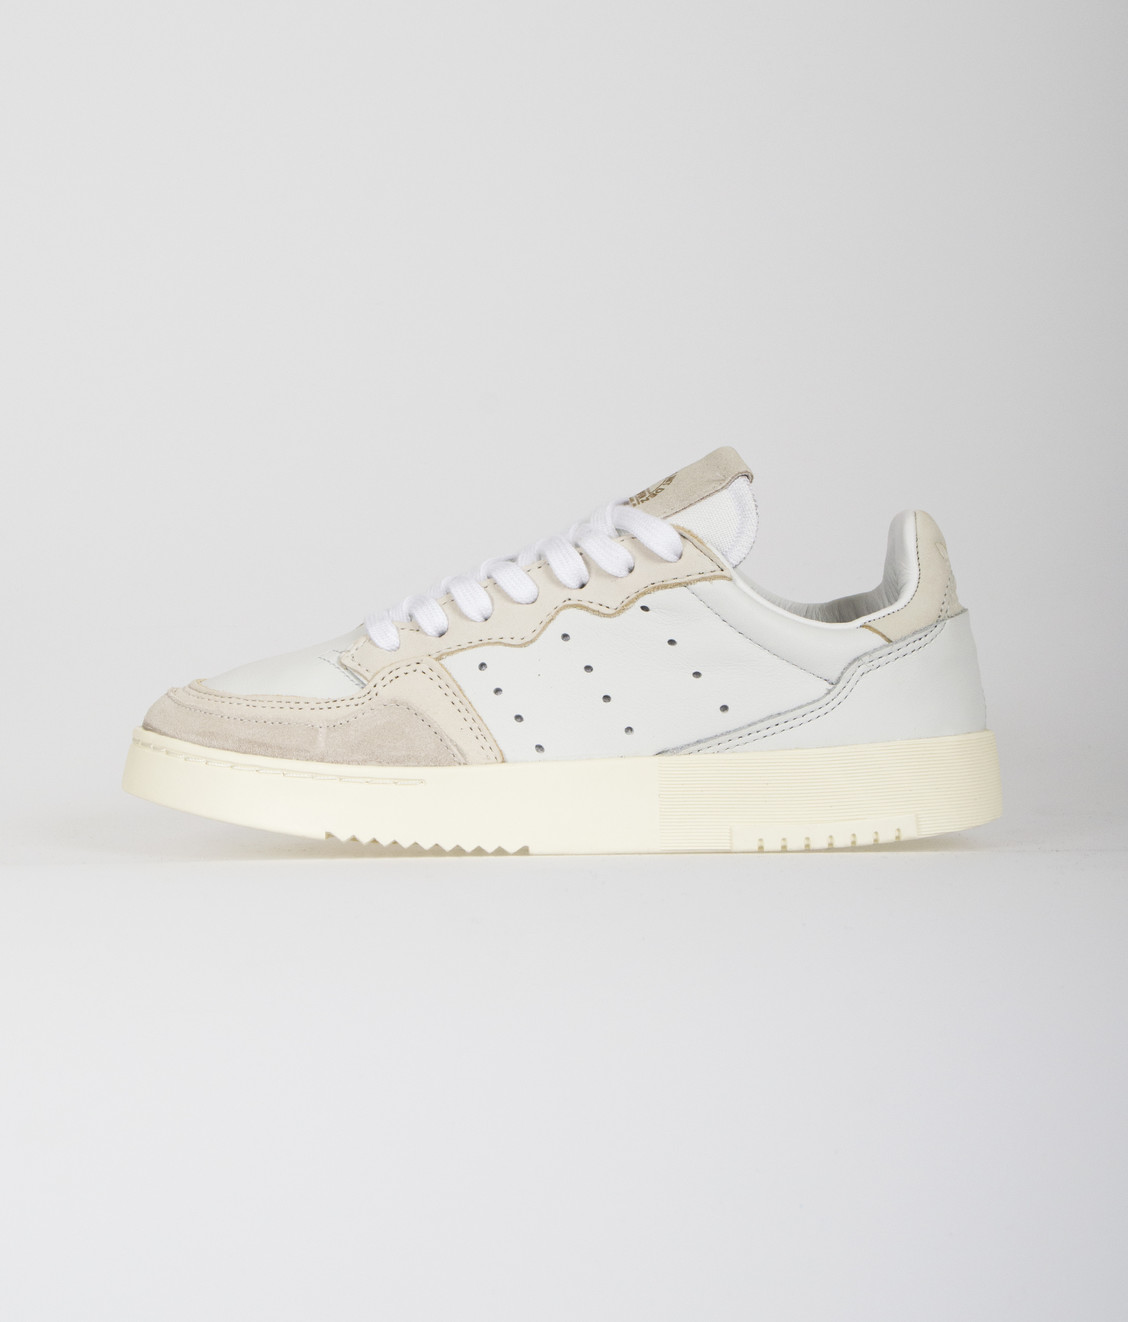 Adidas Adidas Supercourt Crystal White